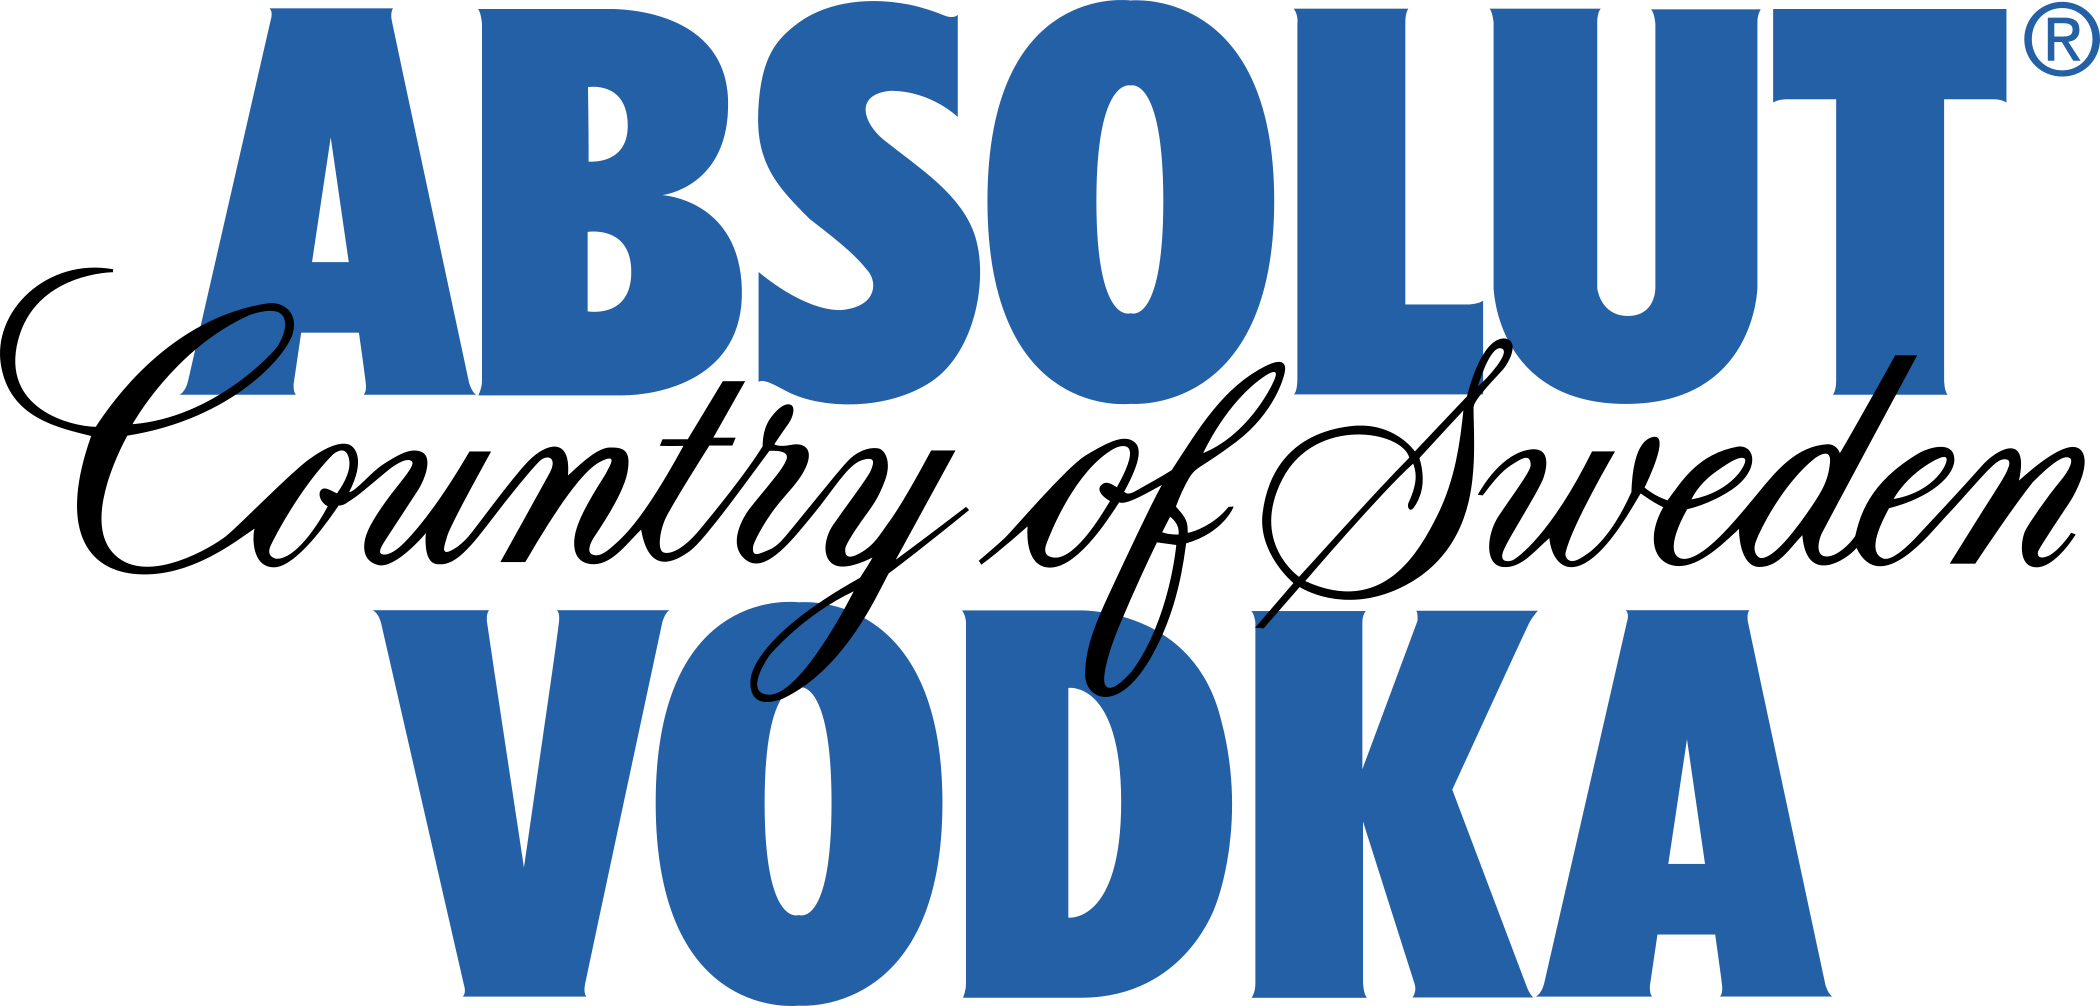 absolut-vodka-logo-3